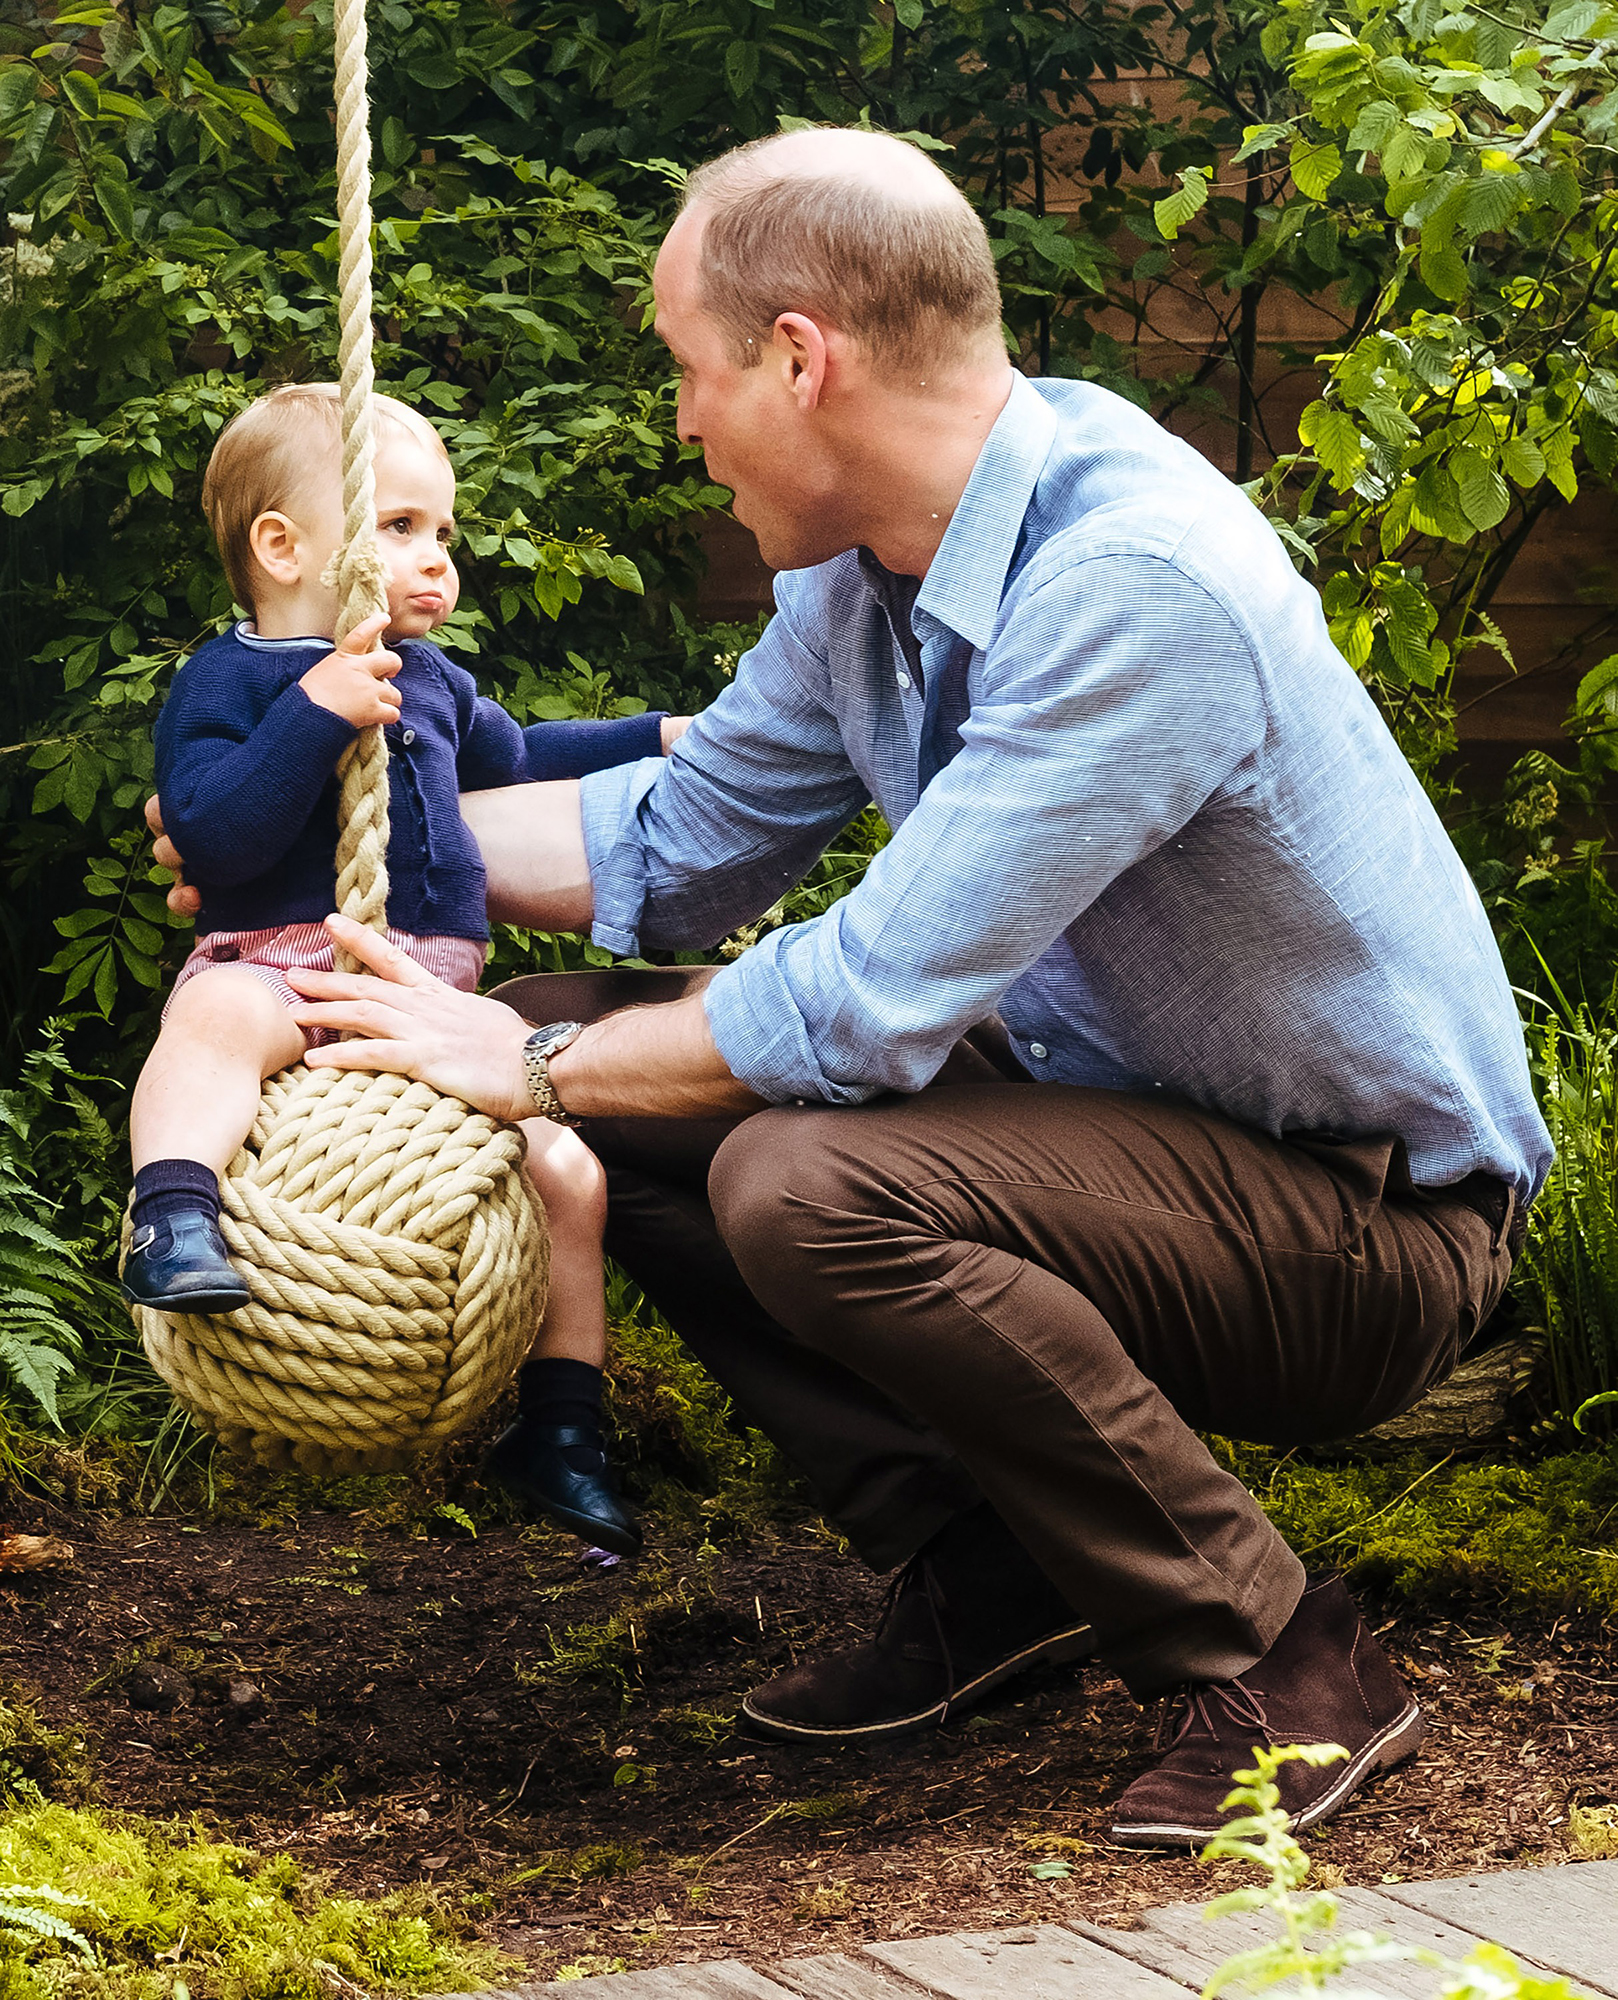 Prince William and Louis Chelsea Flower Show - Louis sat on a rope swing with his dad's help at the Chelsea Flower Show garden his mom designed in May 2019.